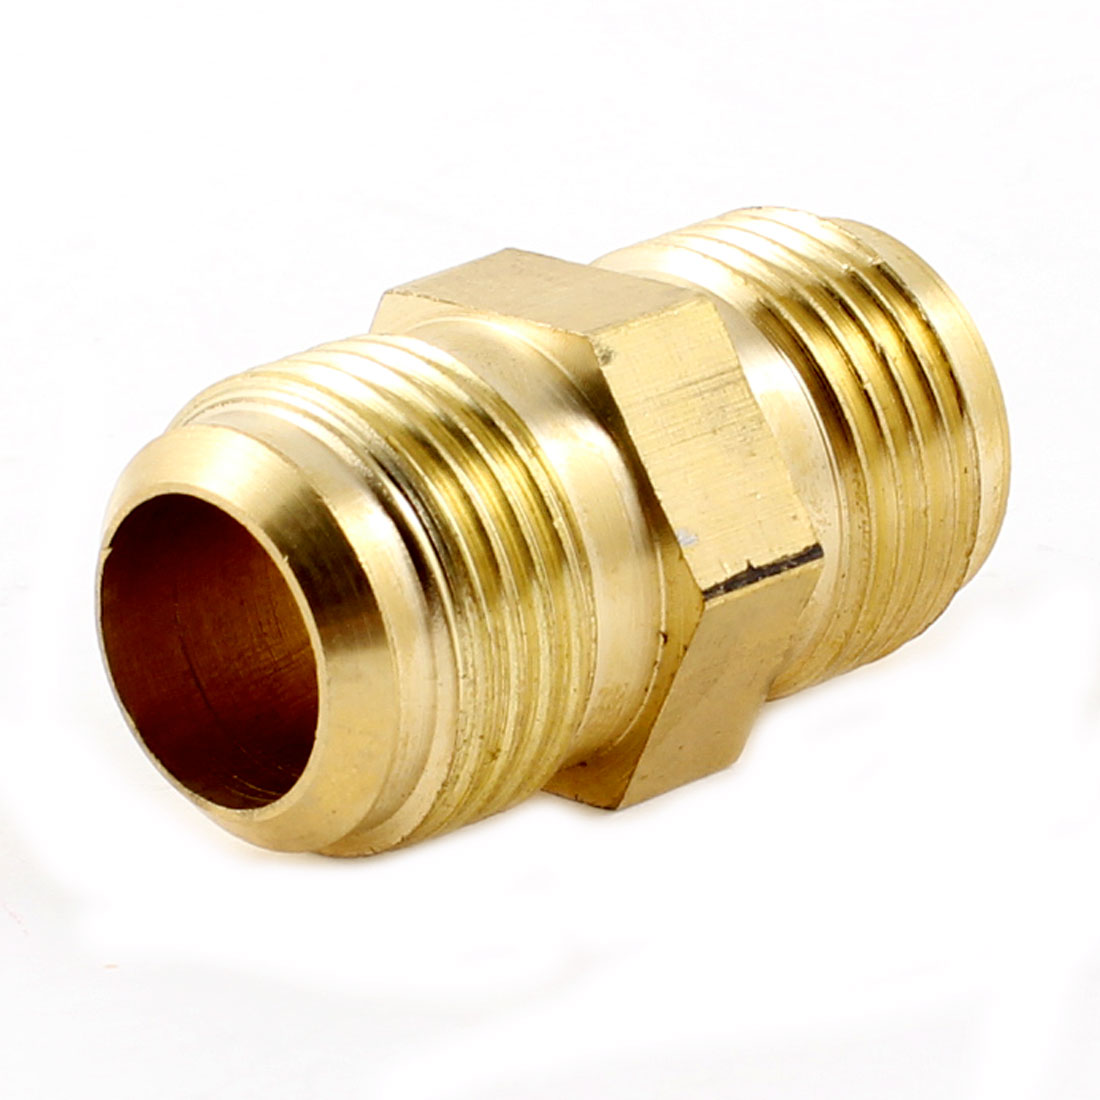 15.88mm Tubing Straight M/M Connect Joiner Pipe Fitting for Air Conditioner